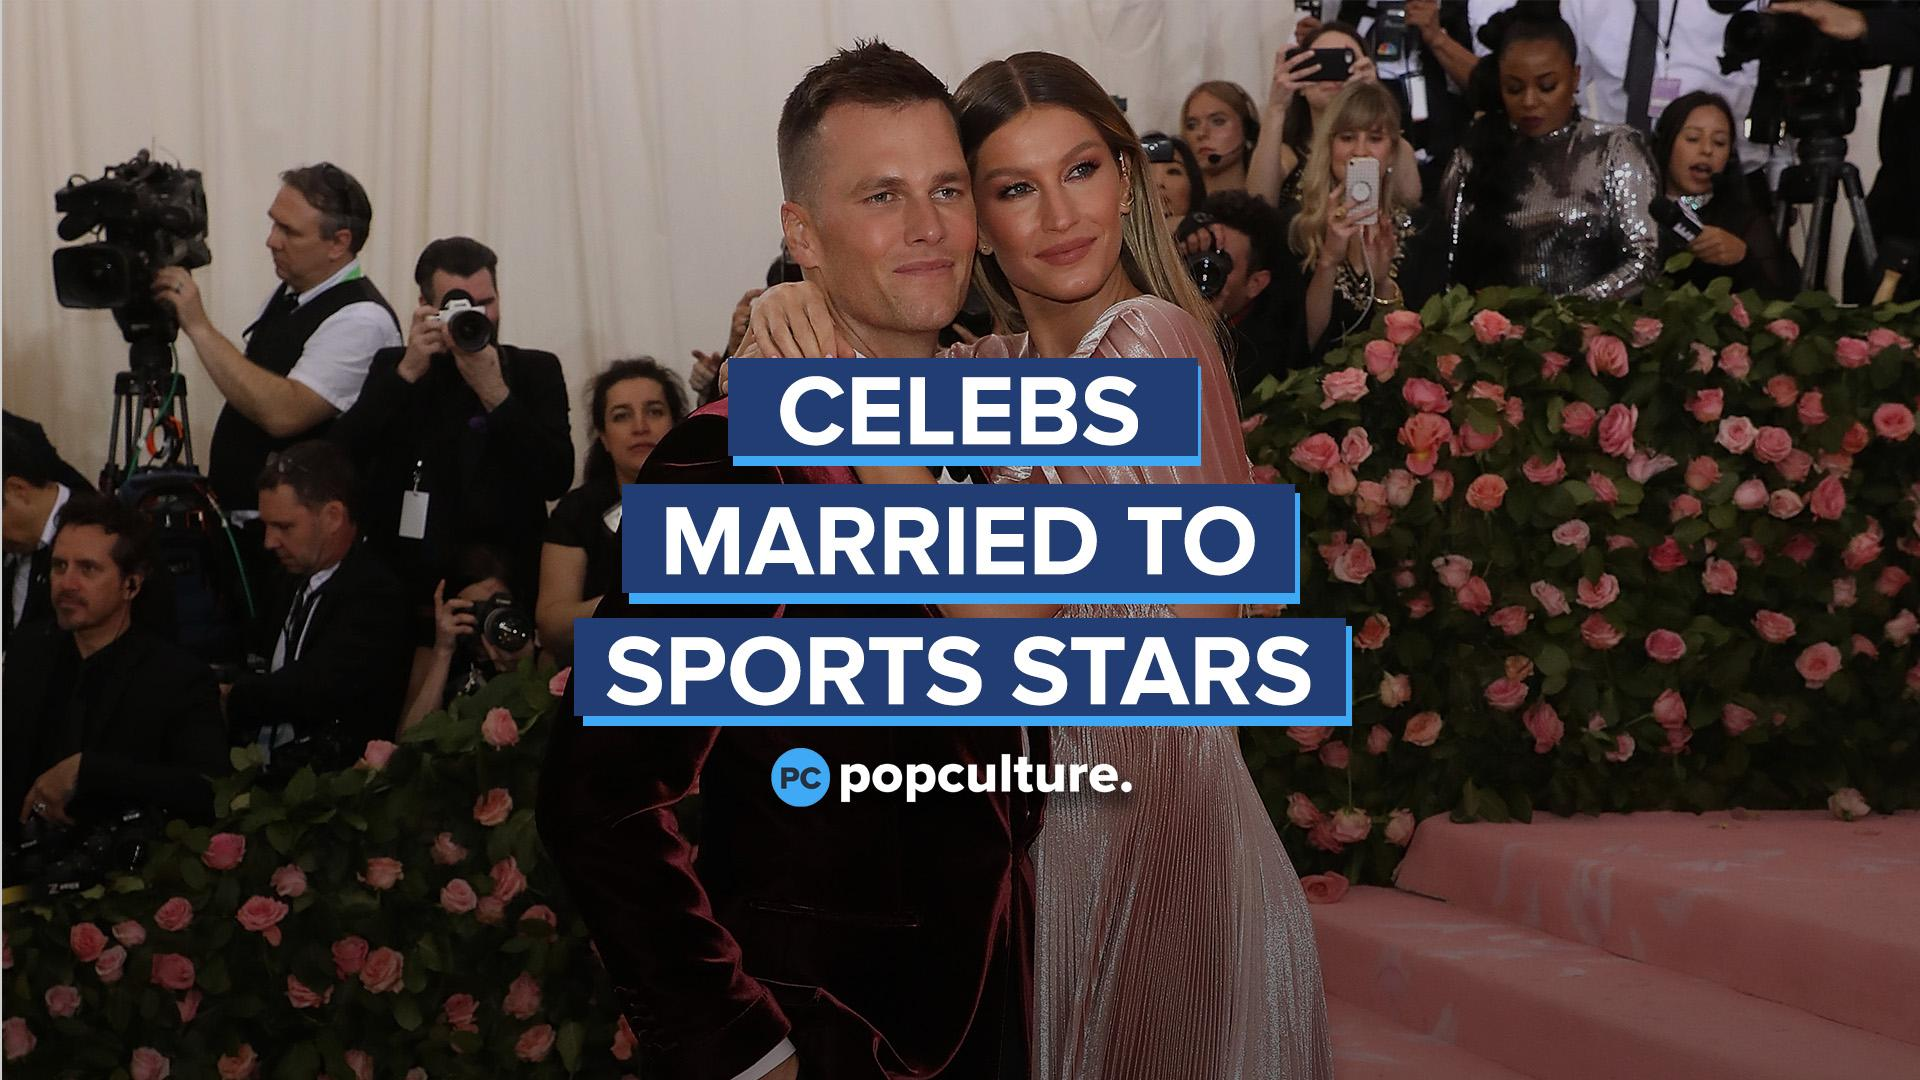 Celebrities Who Married Sports Super Stars screen capture